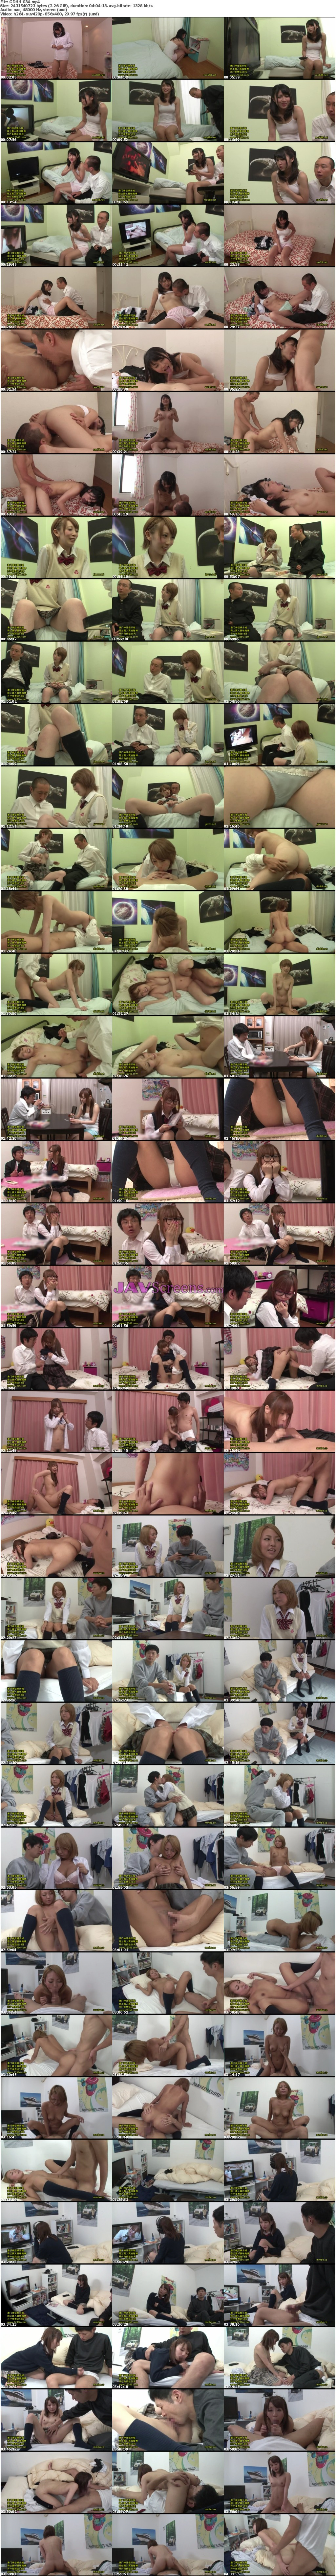 GDHH-034.jpg - JAV Screenshot